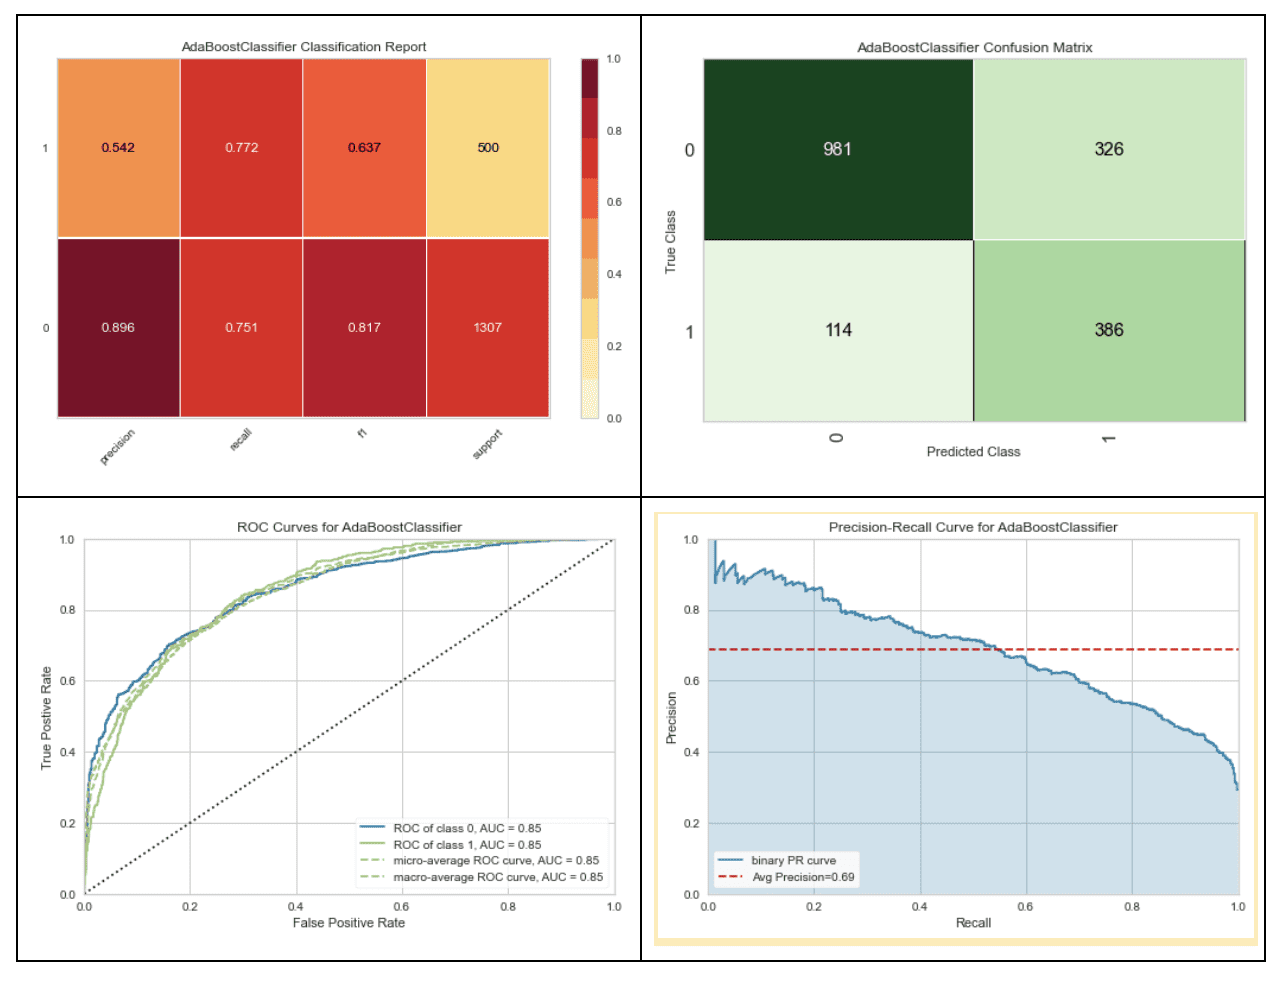 PyCaret includes built-in visualizations to help evaluate models. Generating these visualizations requires a single function call rather than complex custom code.